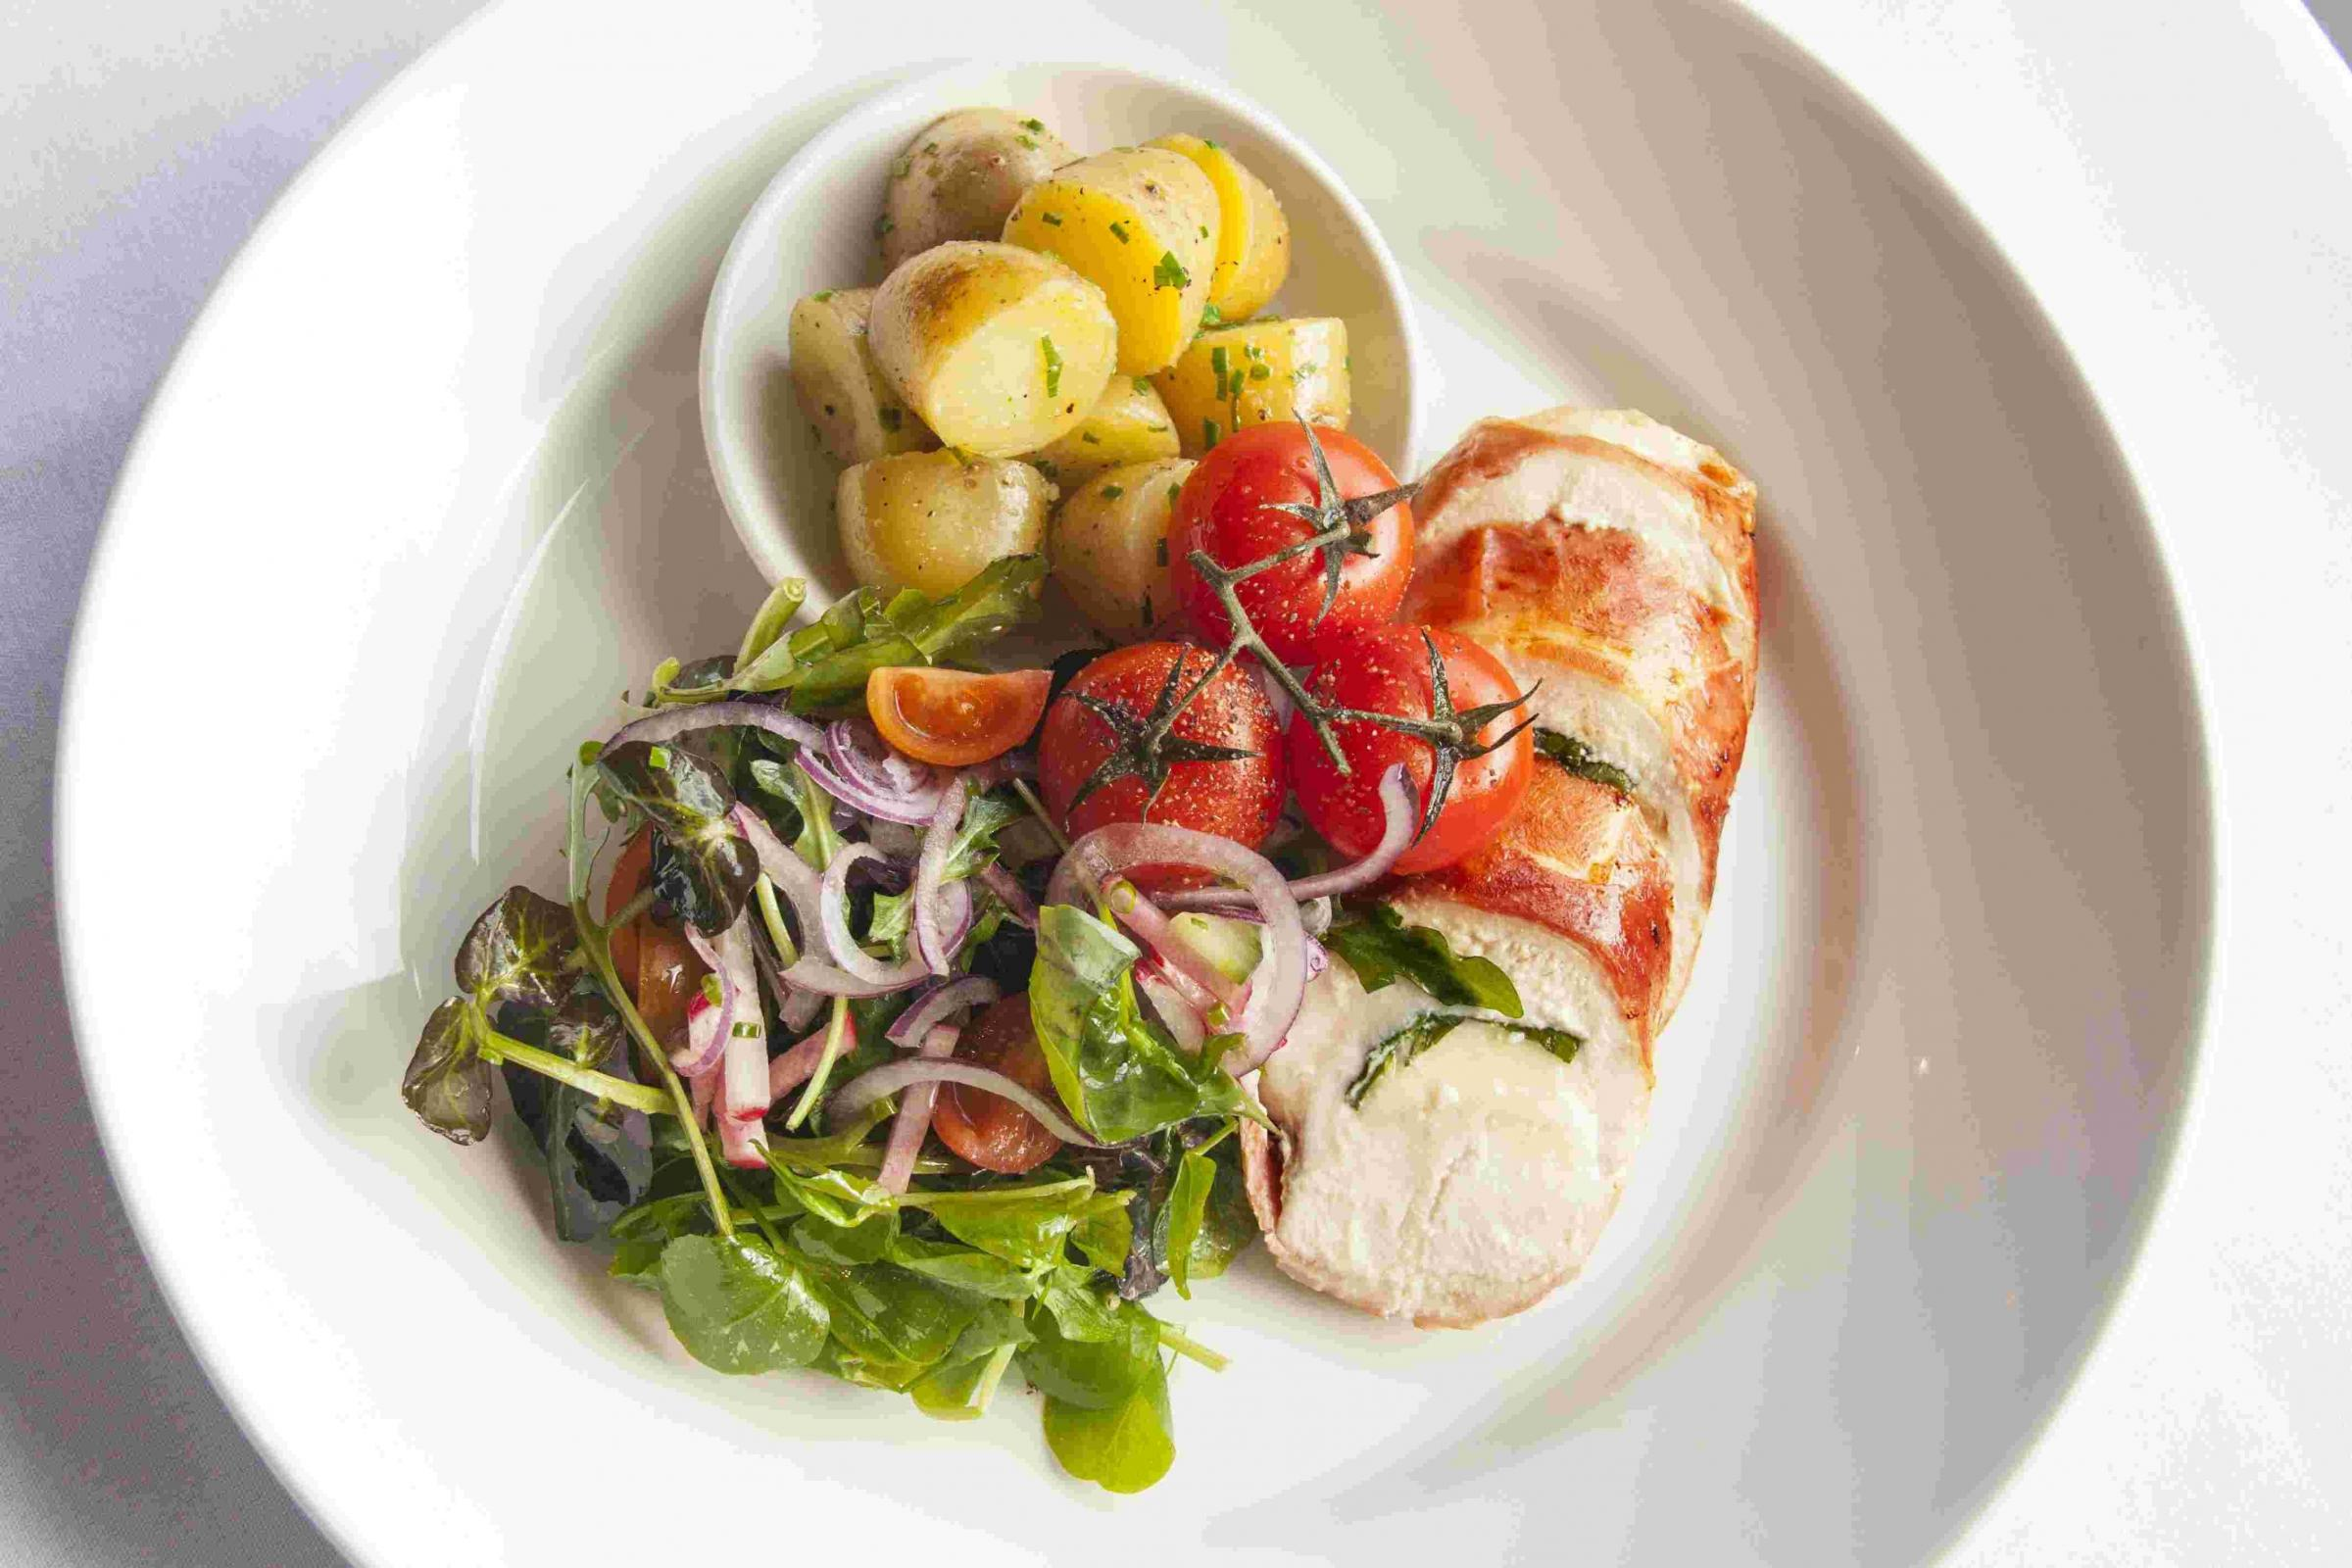 How to cook chicken breast stuffed with cheese wrapped in parma ham